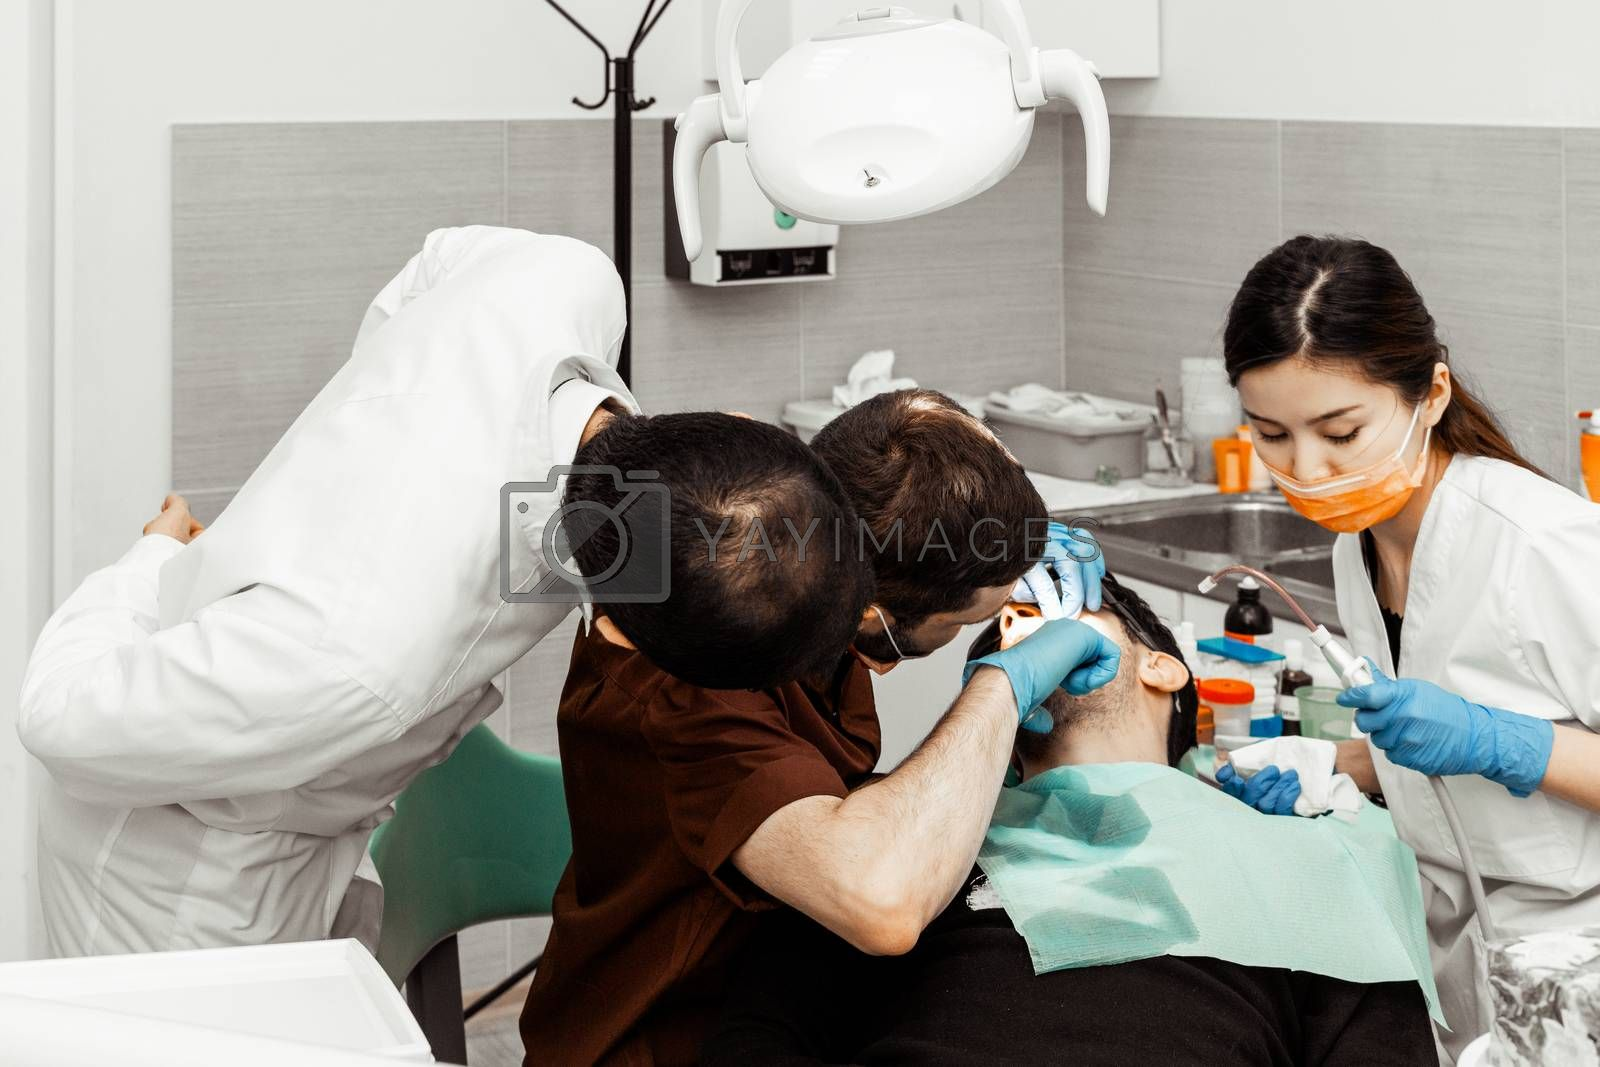 Two dentists treat a patient. Professional uniform and equipment of a dentist. Healthcare Equipping a doctors workplace. Dentistry